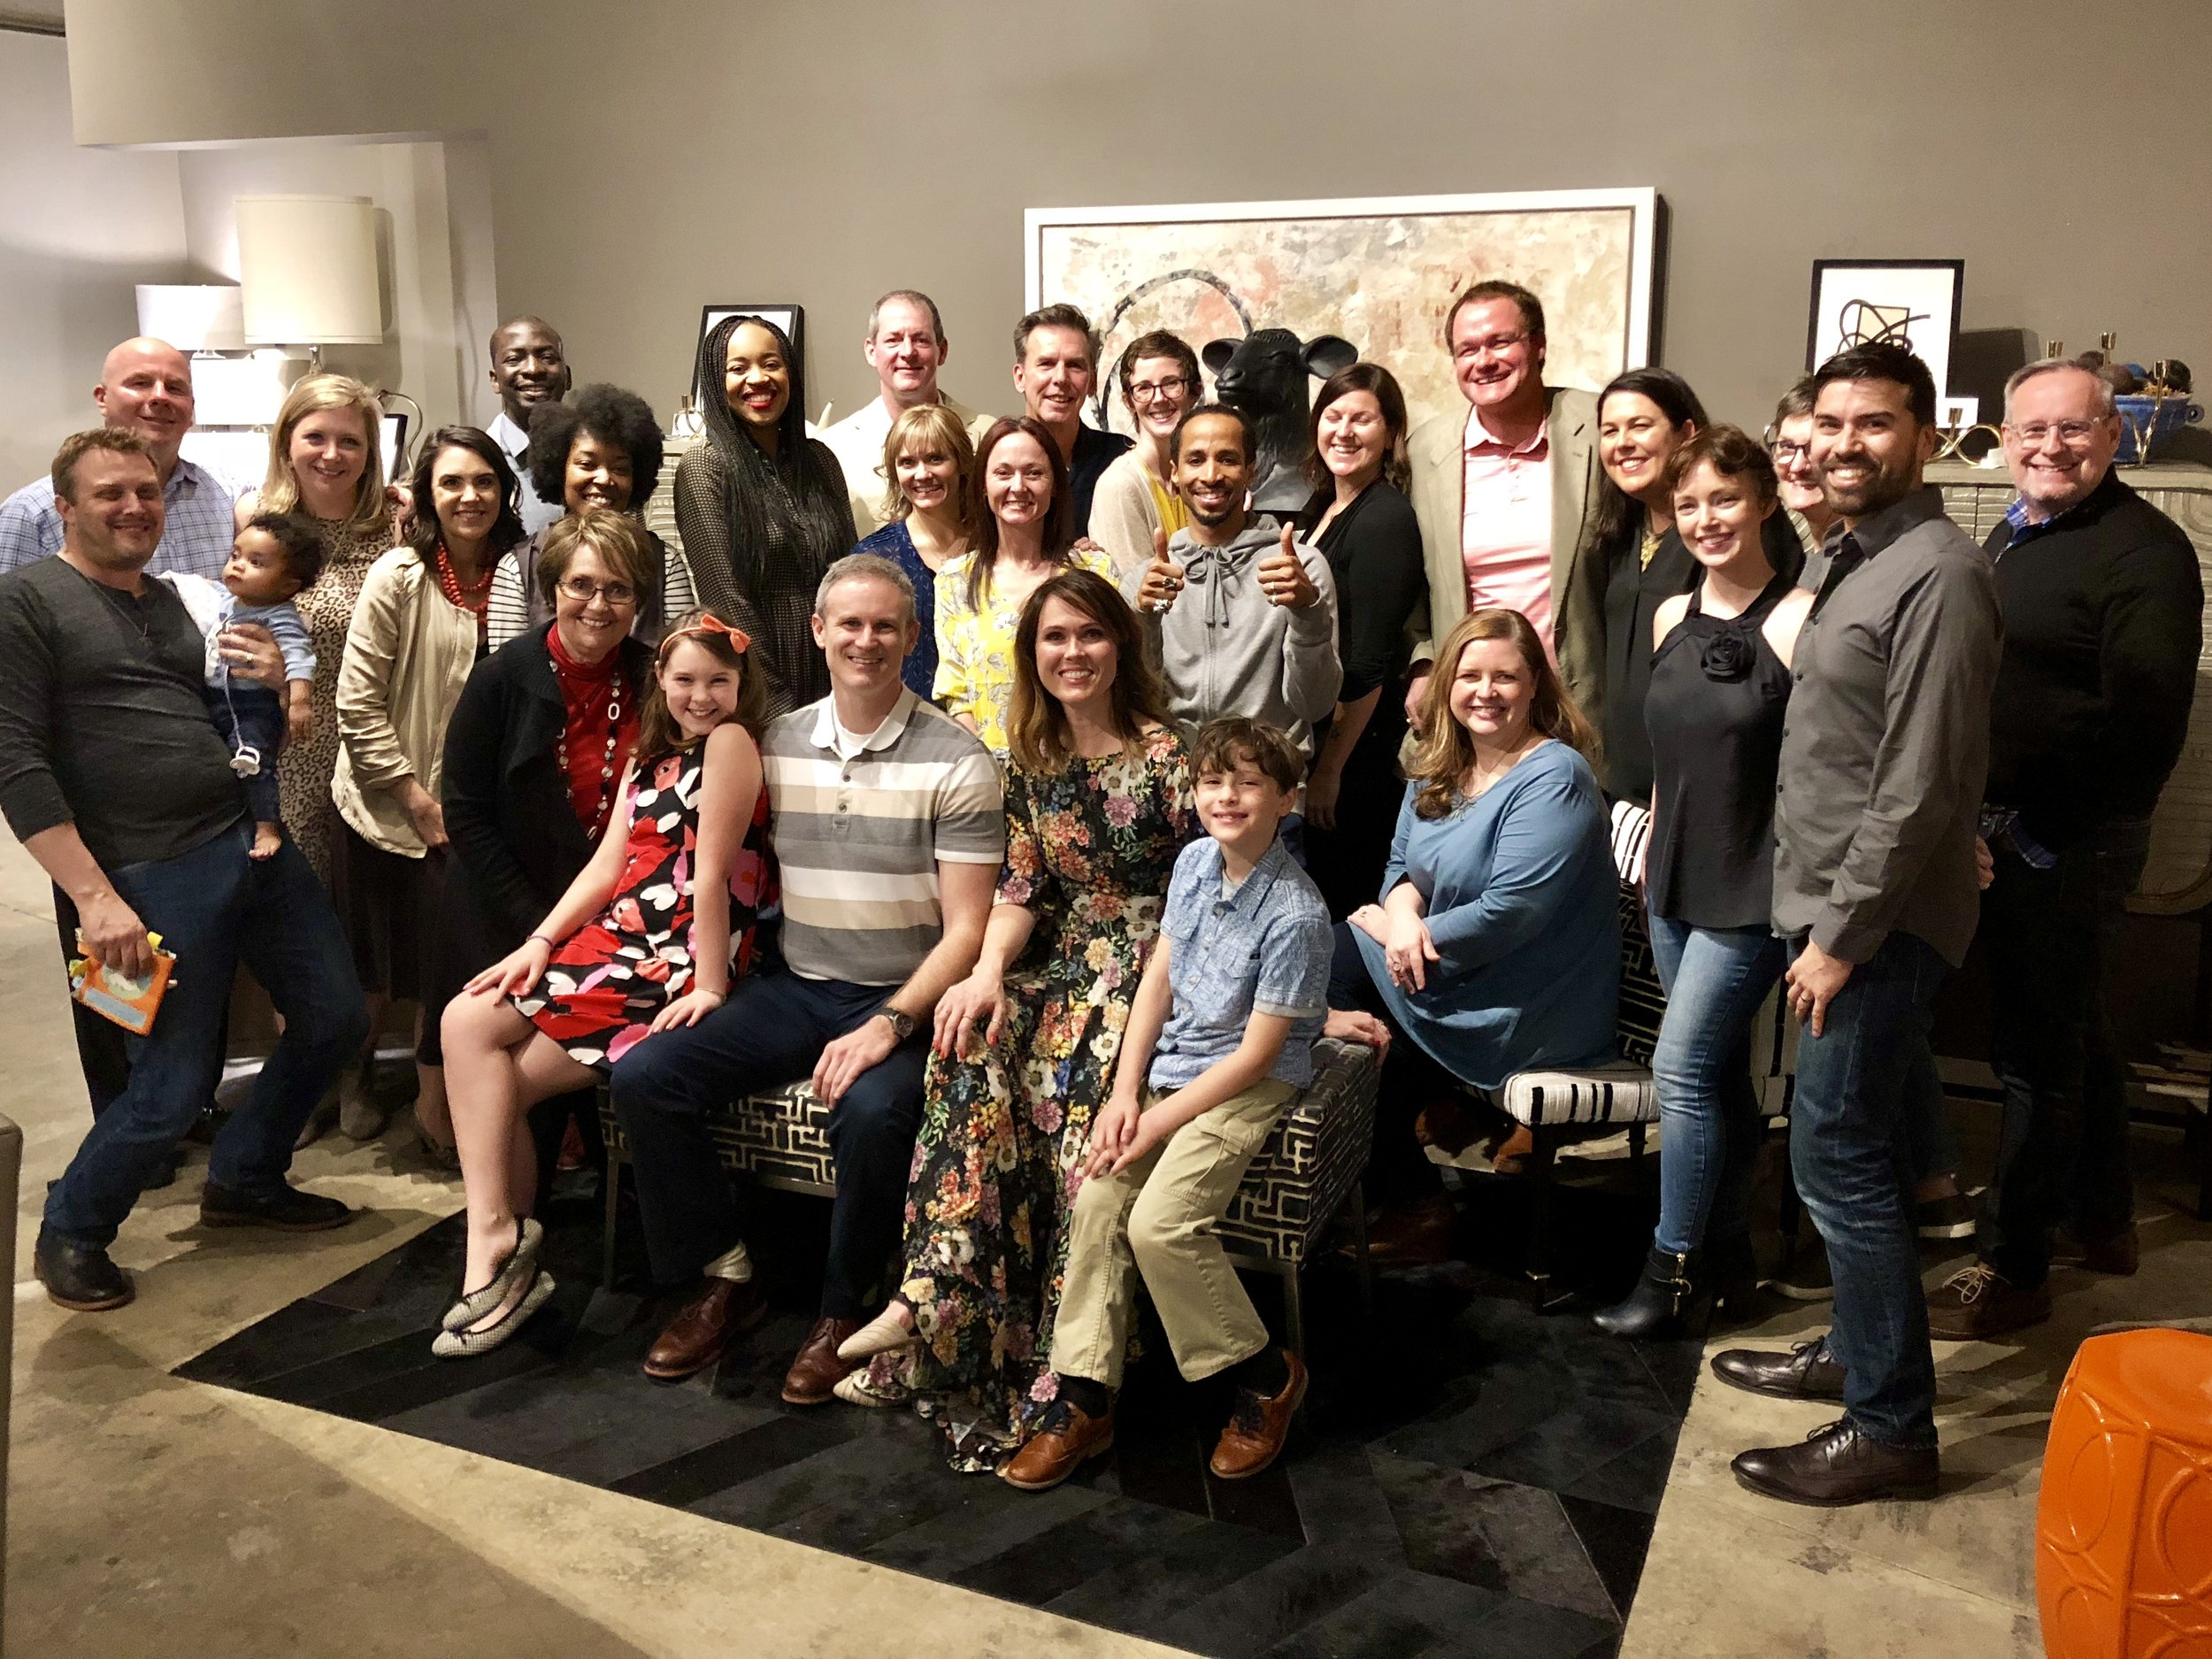 Fantastic group of friends, family, and clients that closed out the celebration!